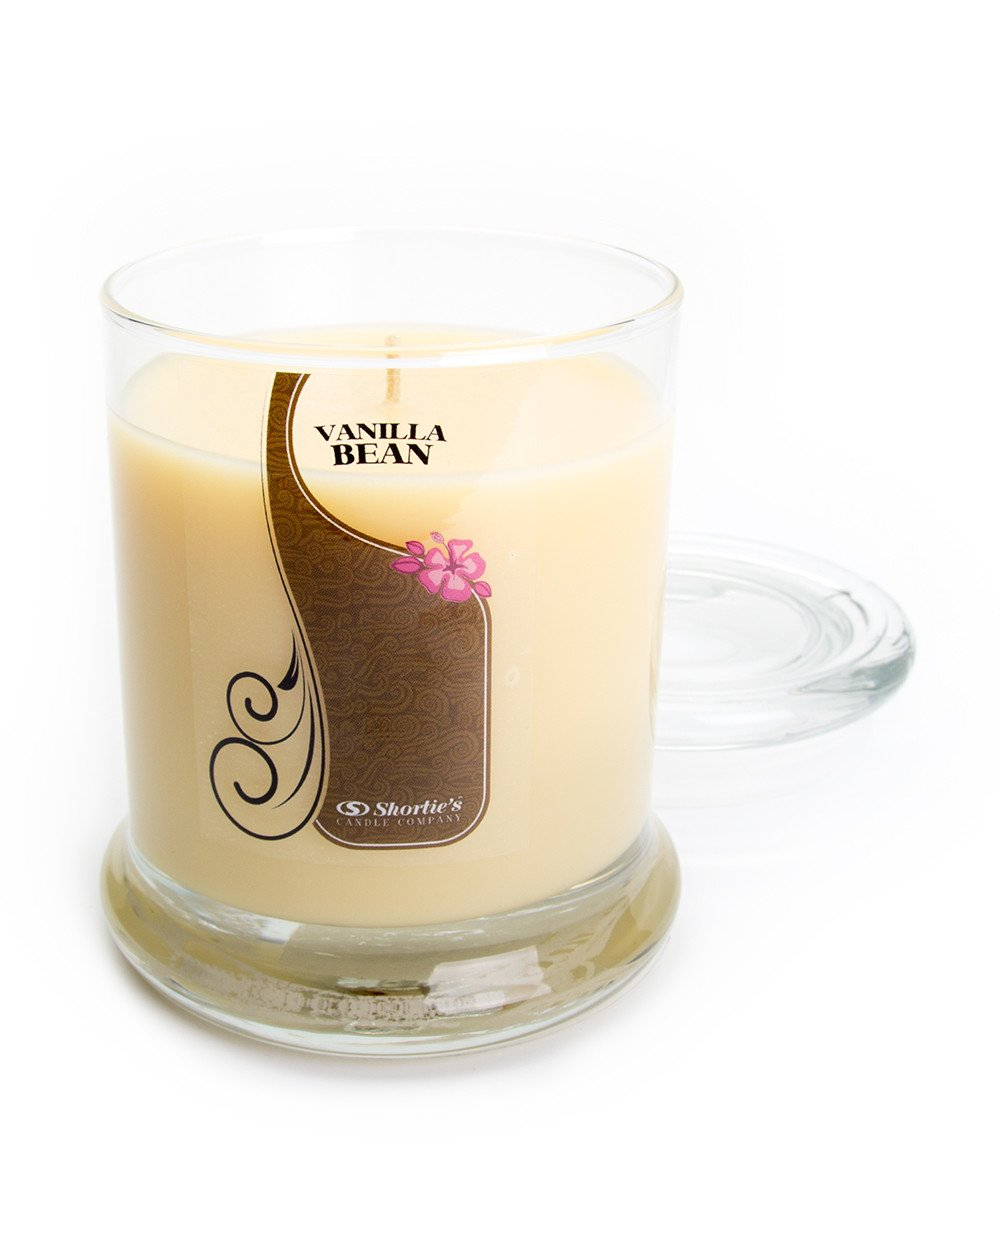 Vanilla Bean Candle - Medium Beige 10 Oz. Highly Scented Jar Candle - Made with Natural Oils - Bakery & Food Collection - Our Vanilla Bean candles are hand poured with a soft food grade paraffin wax blend for great scent throw. Made in the USA with natural and essential oils, and a clean burning natural fiber single wick (lead free). All of our Bakery & Food candles are highly scented and designed to burn all the way to the edge and bottom with a strong scent throw. - living-room-decor, living-room, candles - 610T5dYhVmL -